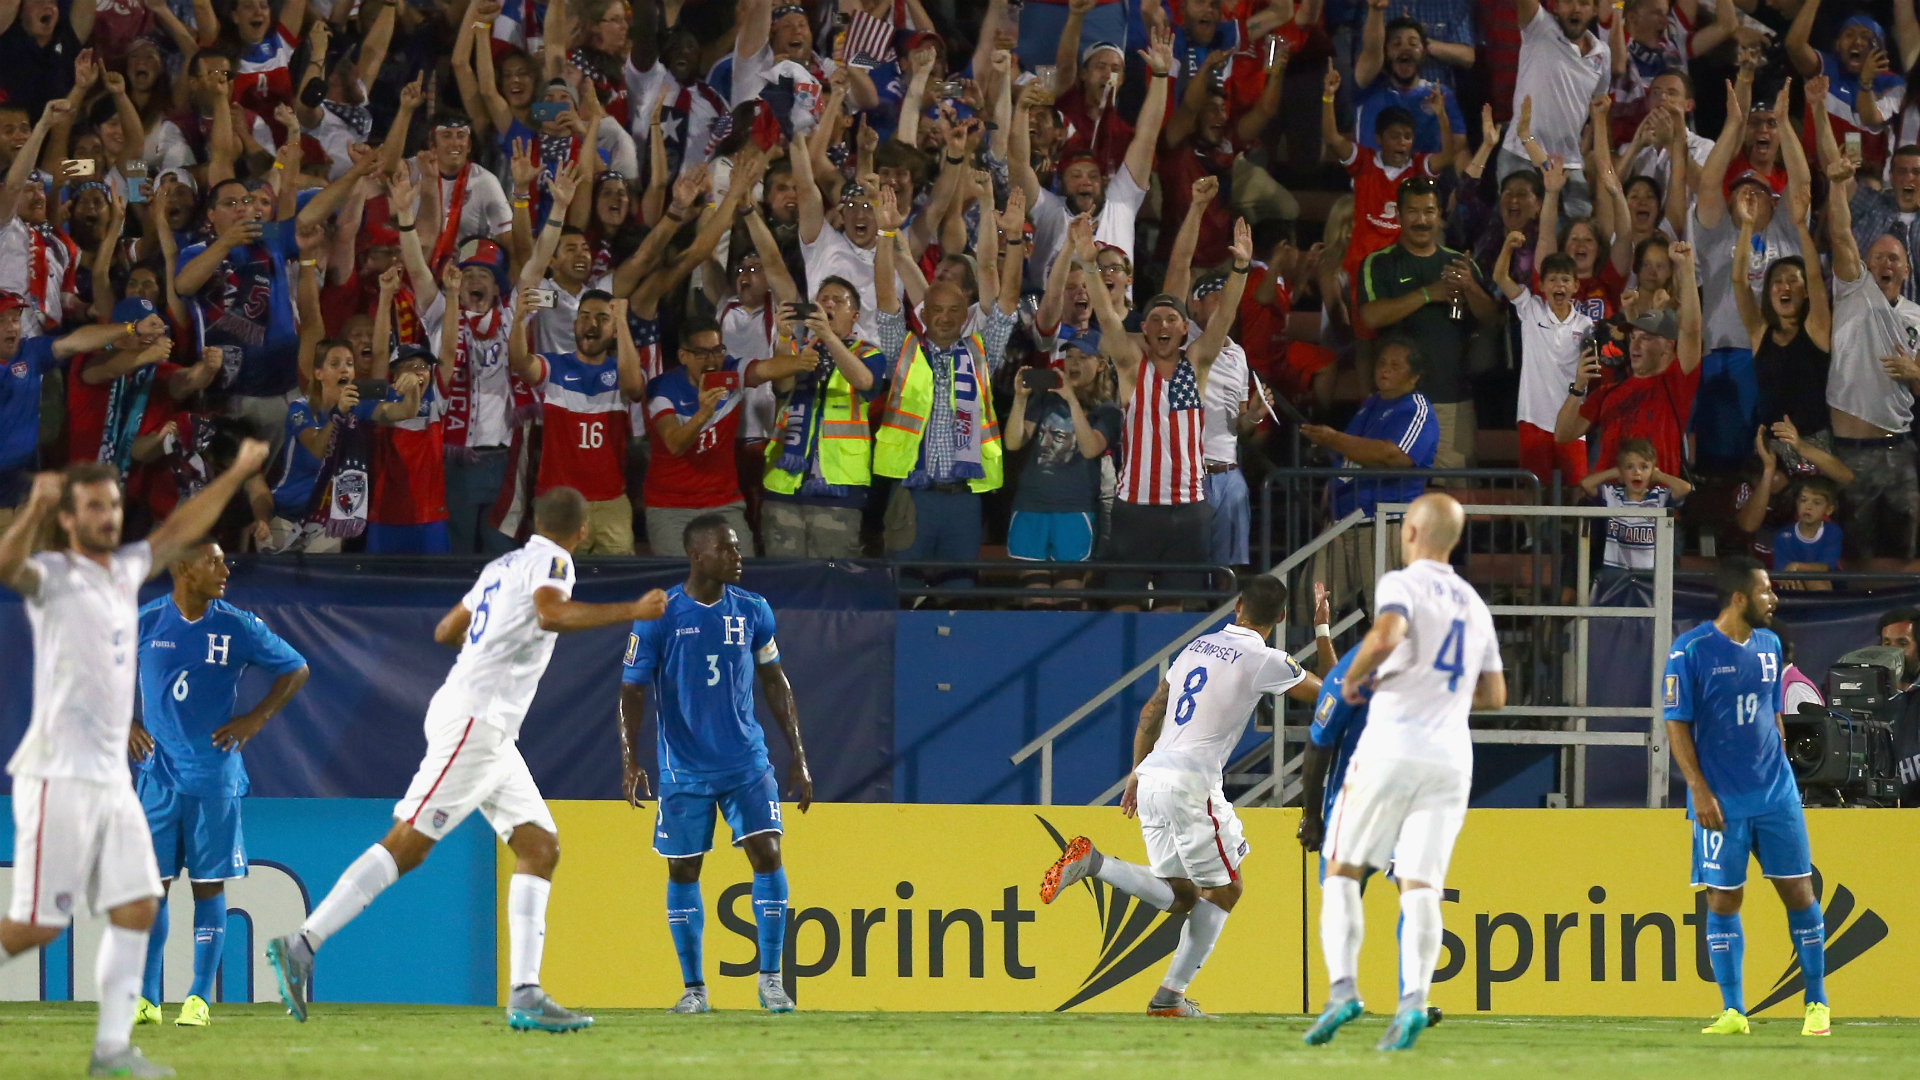 Clint Dempsey's brace helps U.S. to Gold Cup-opening win over Honduras